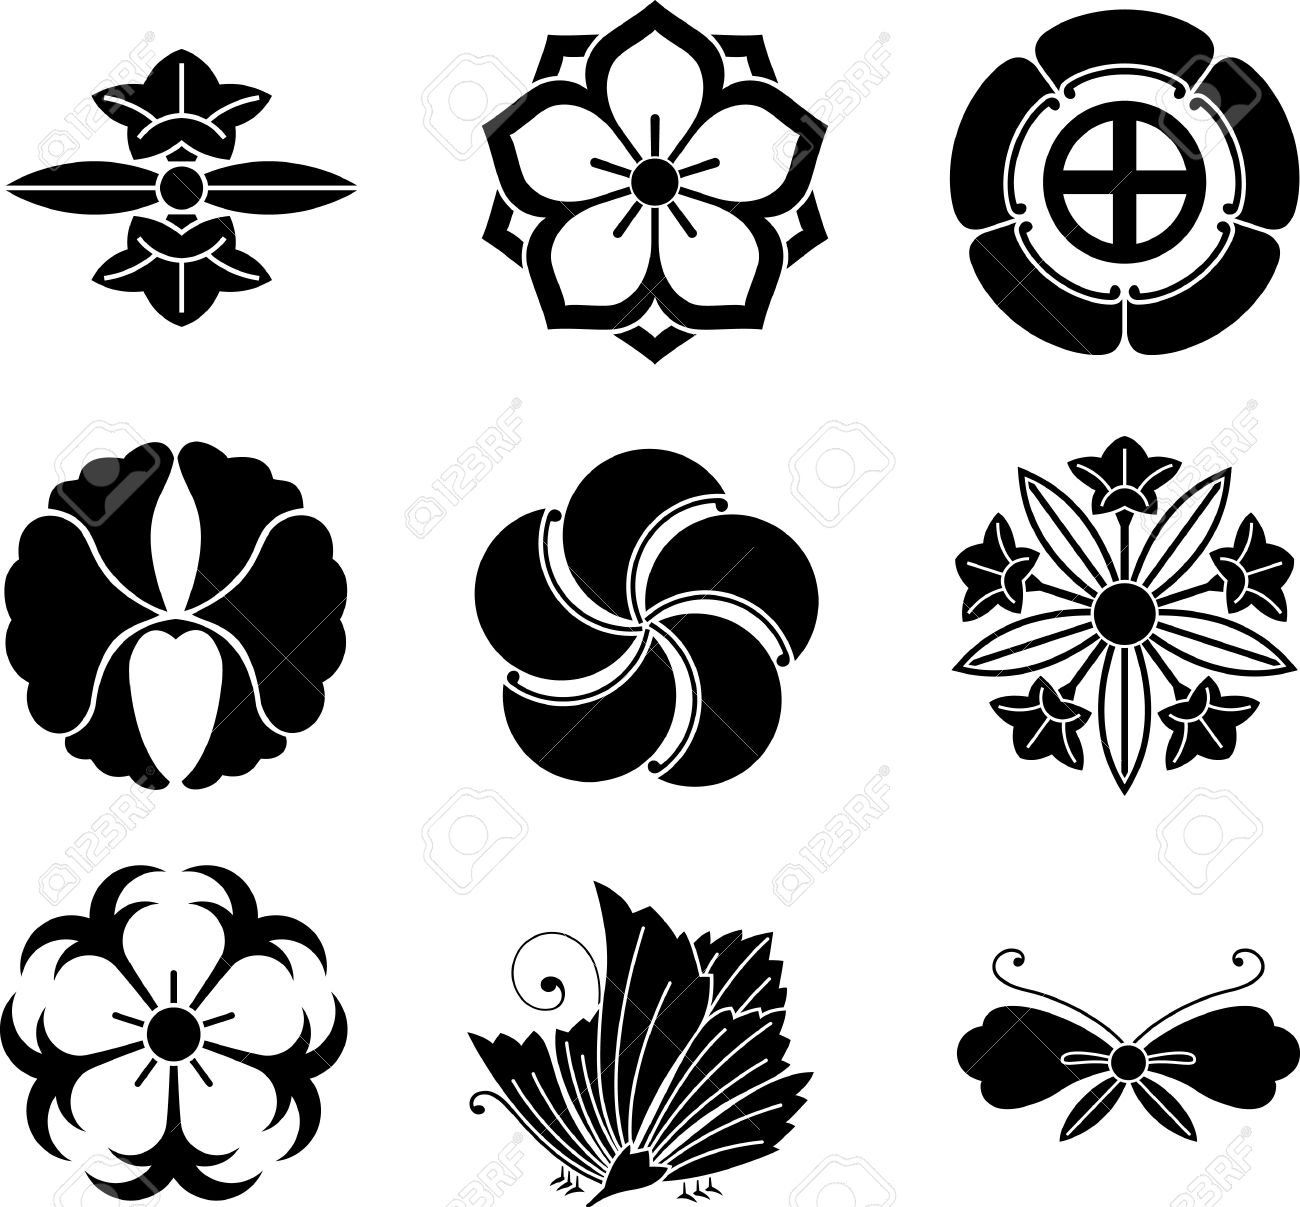 japanese family crests royalty free cliparts, vectors, and stock, Natural flower